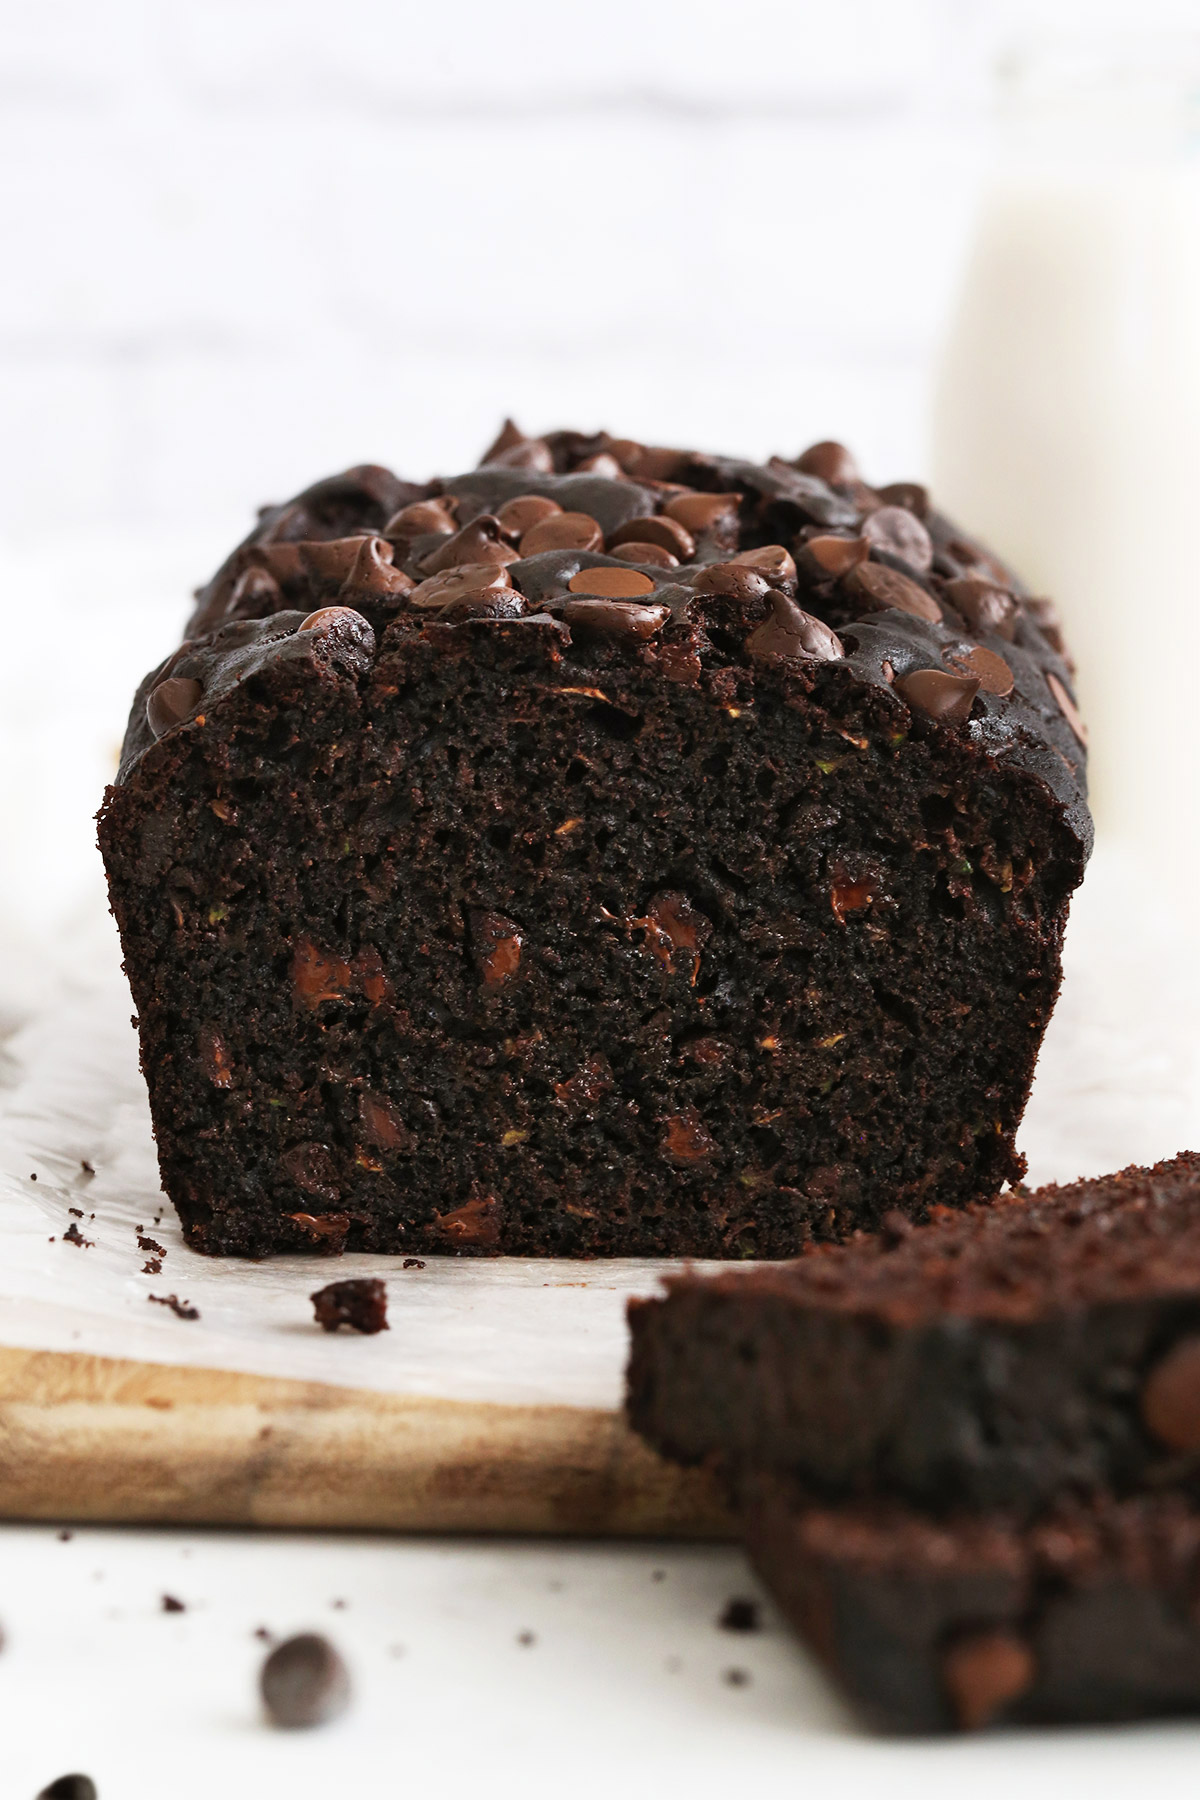 A front view of a sliced loaf of gluten free chocolate zucchini bread